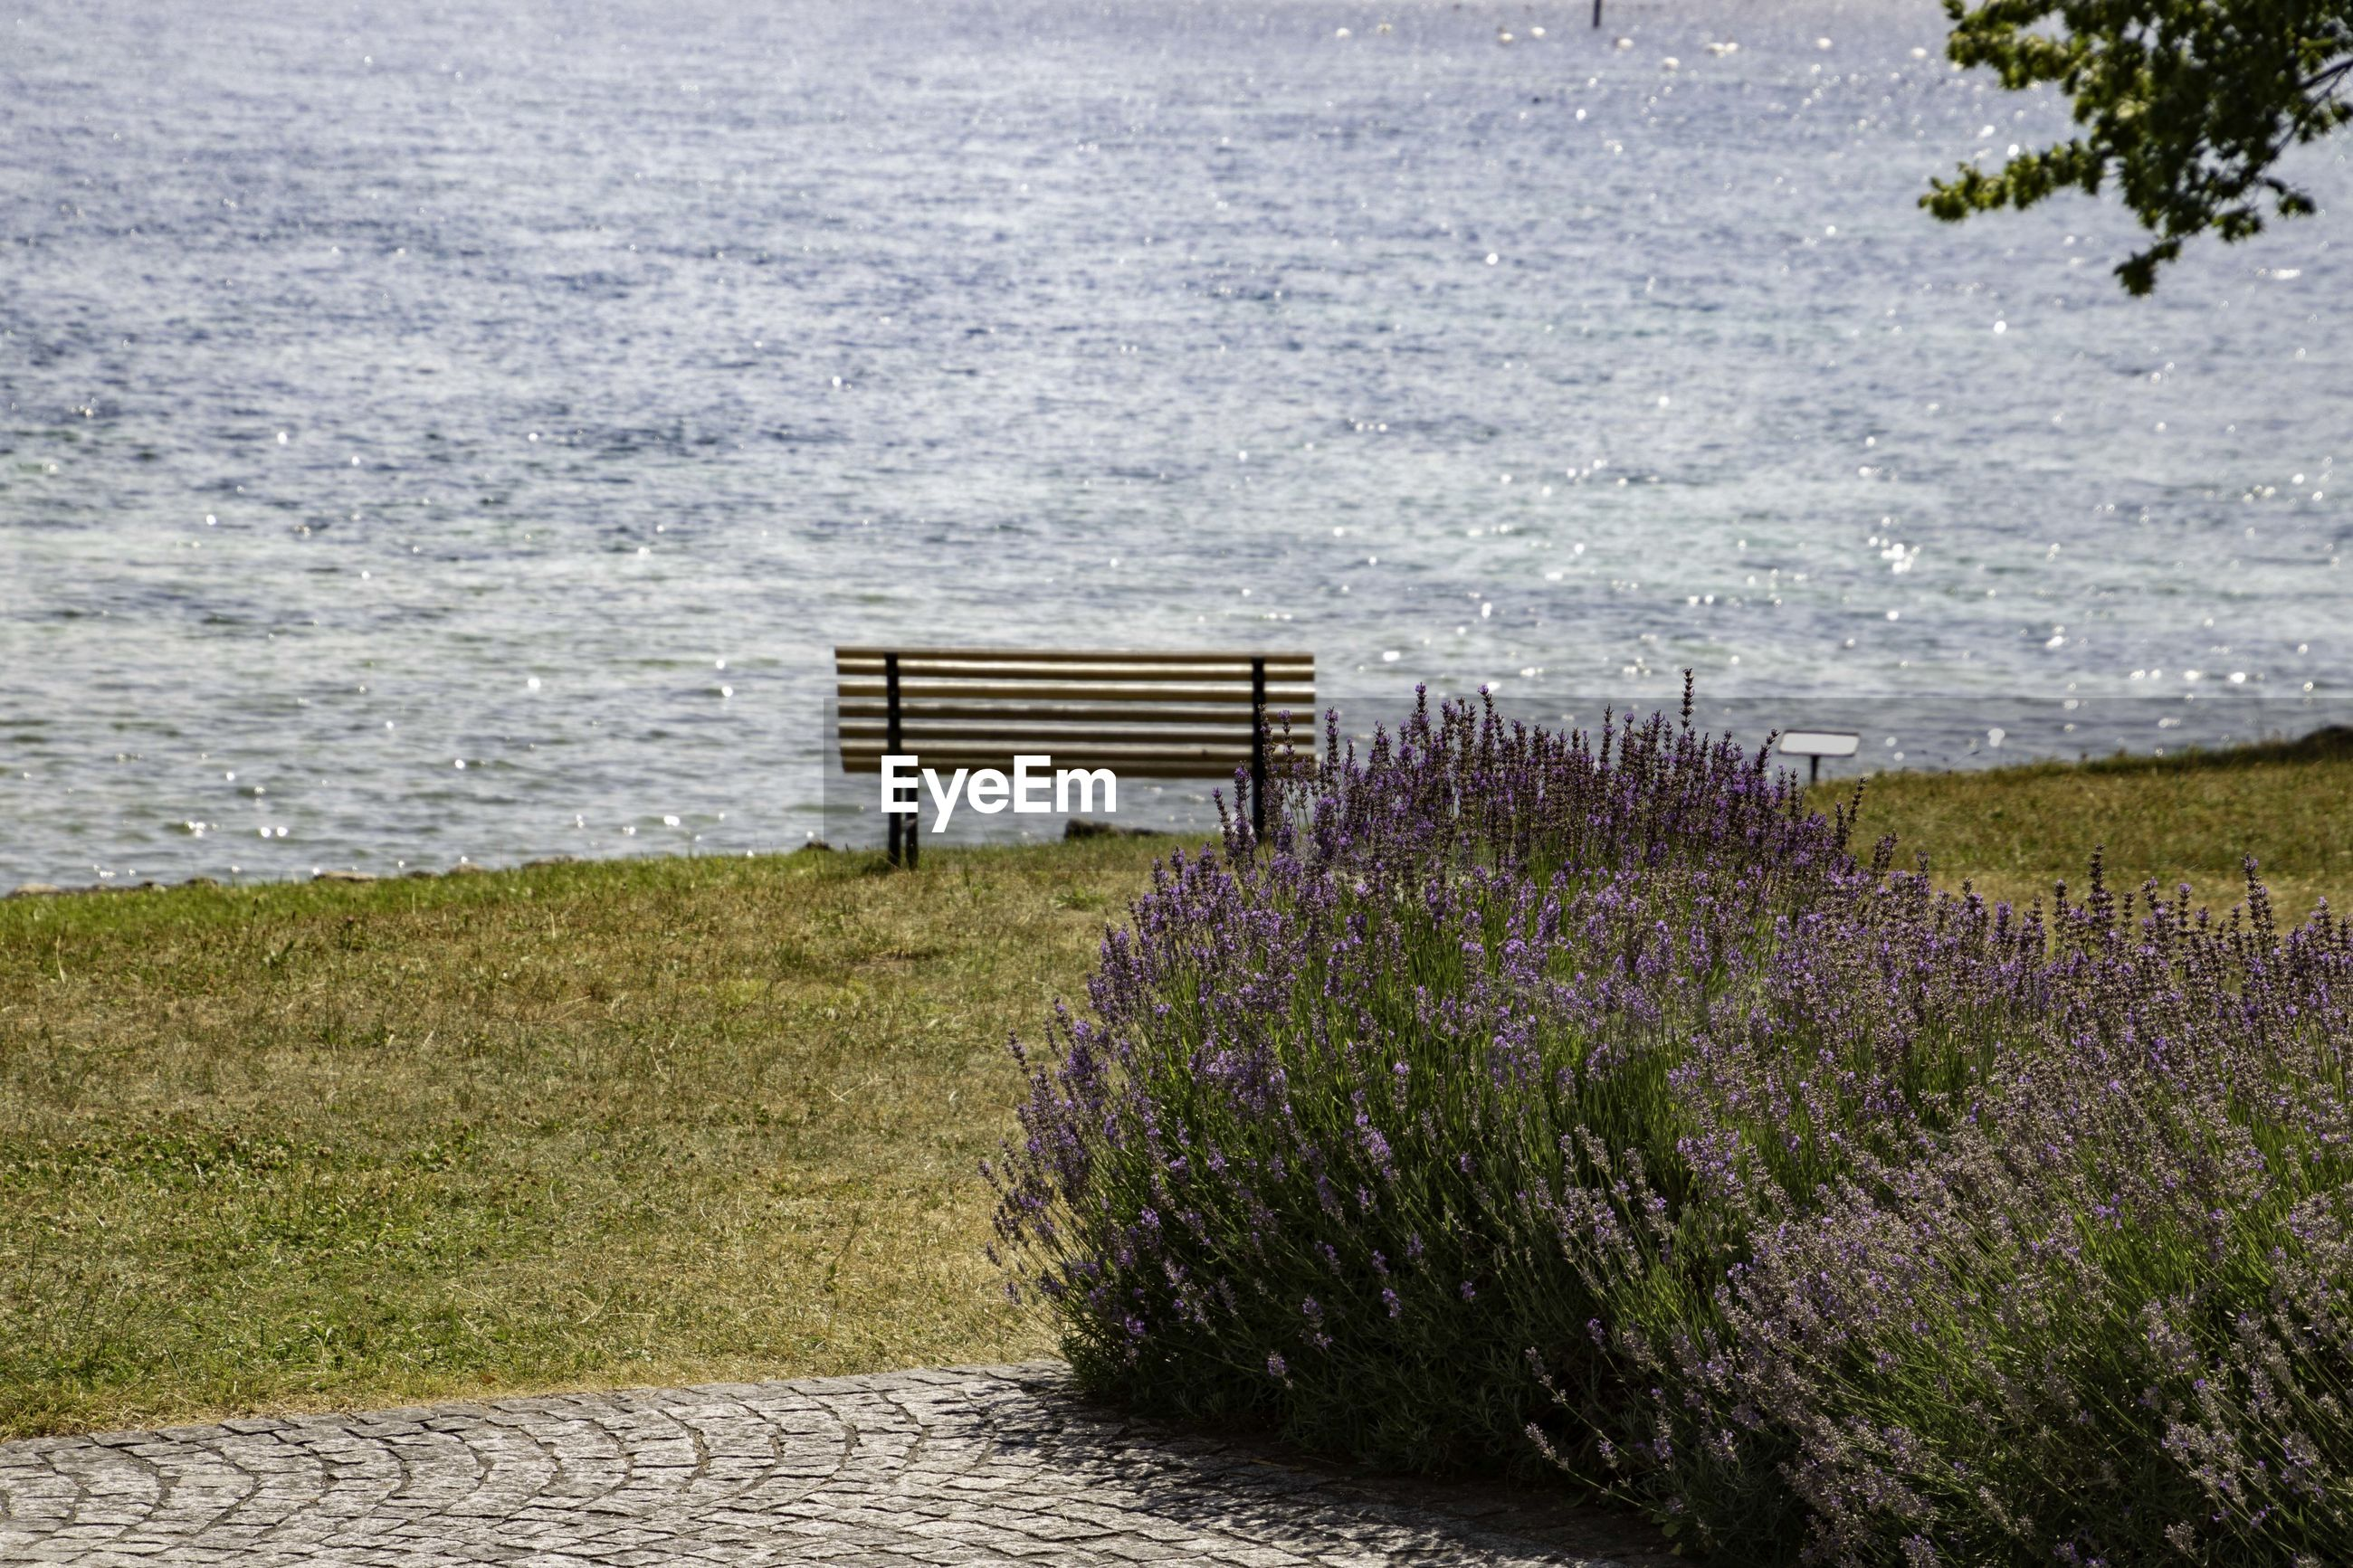 VIEW OF BENCH AND PURPLE FLOWERING PLANTS IN LAKE